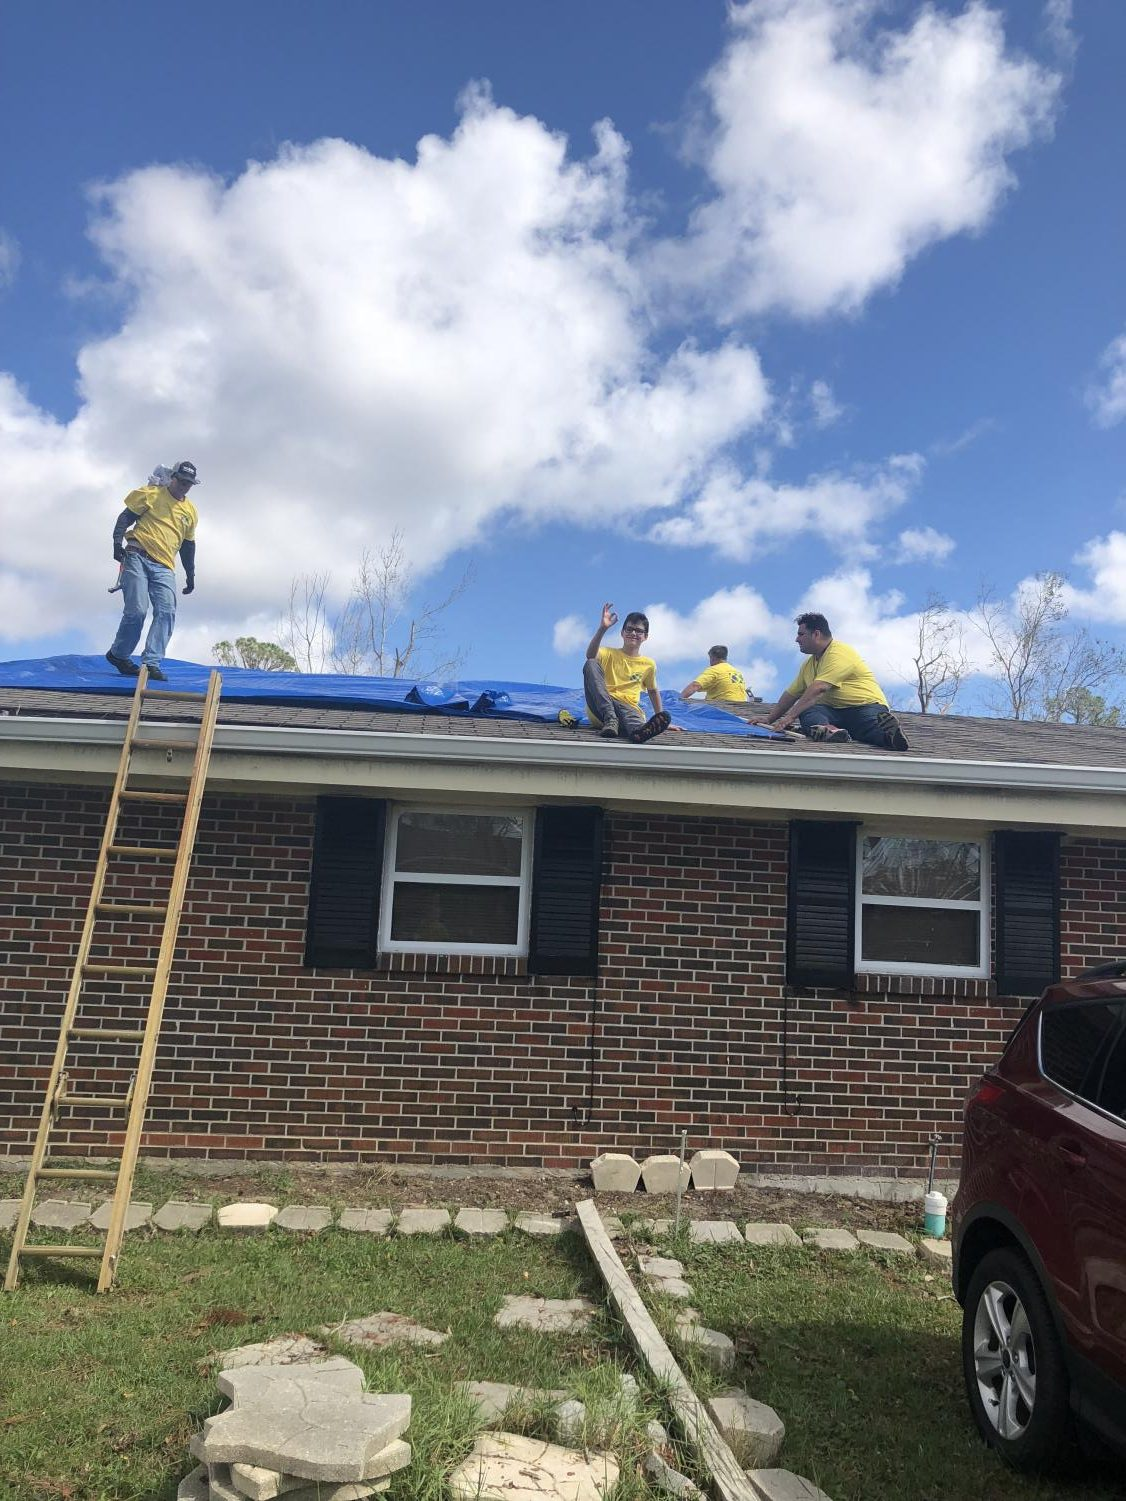 Yellow. The color shines bright as volunteers from the Chruch of Jesus Christ of Latter- Day Saints offered their hands and their weekend for those devastated by hurricane Michael.